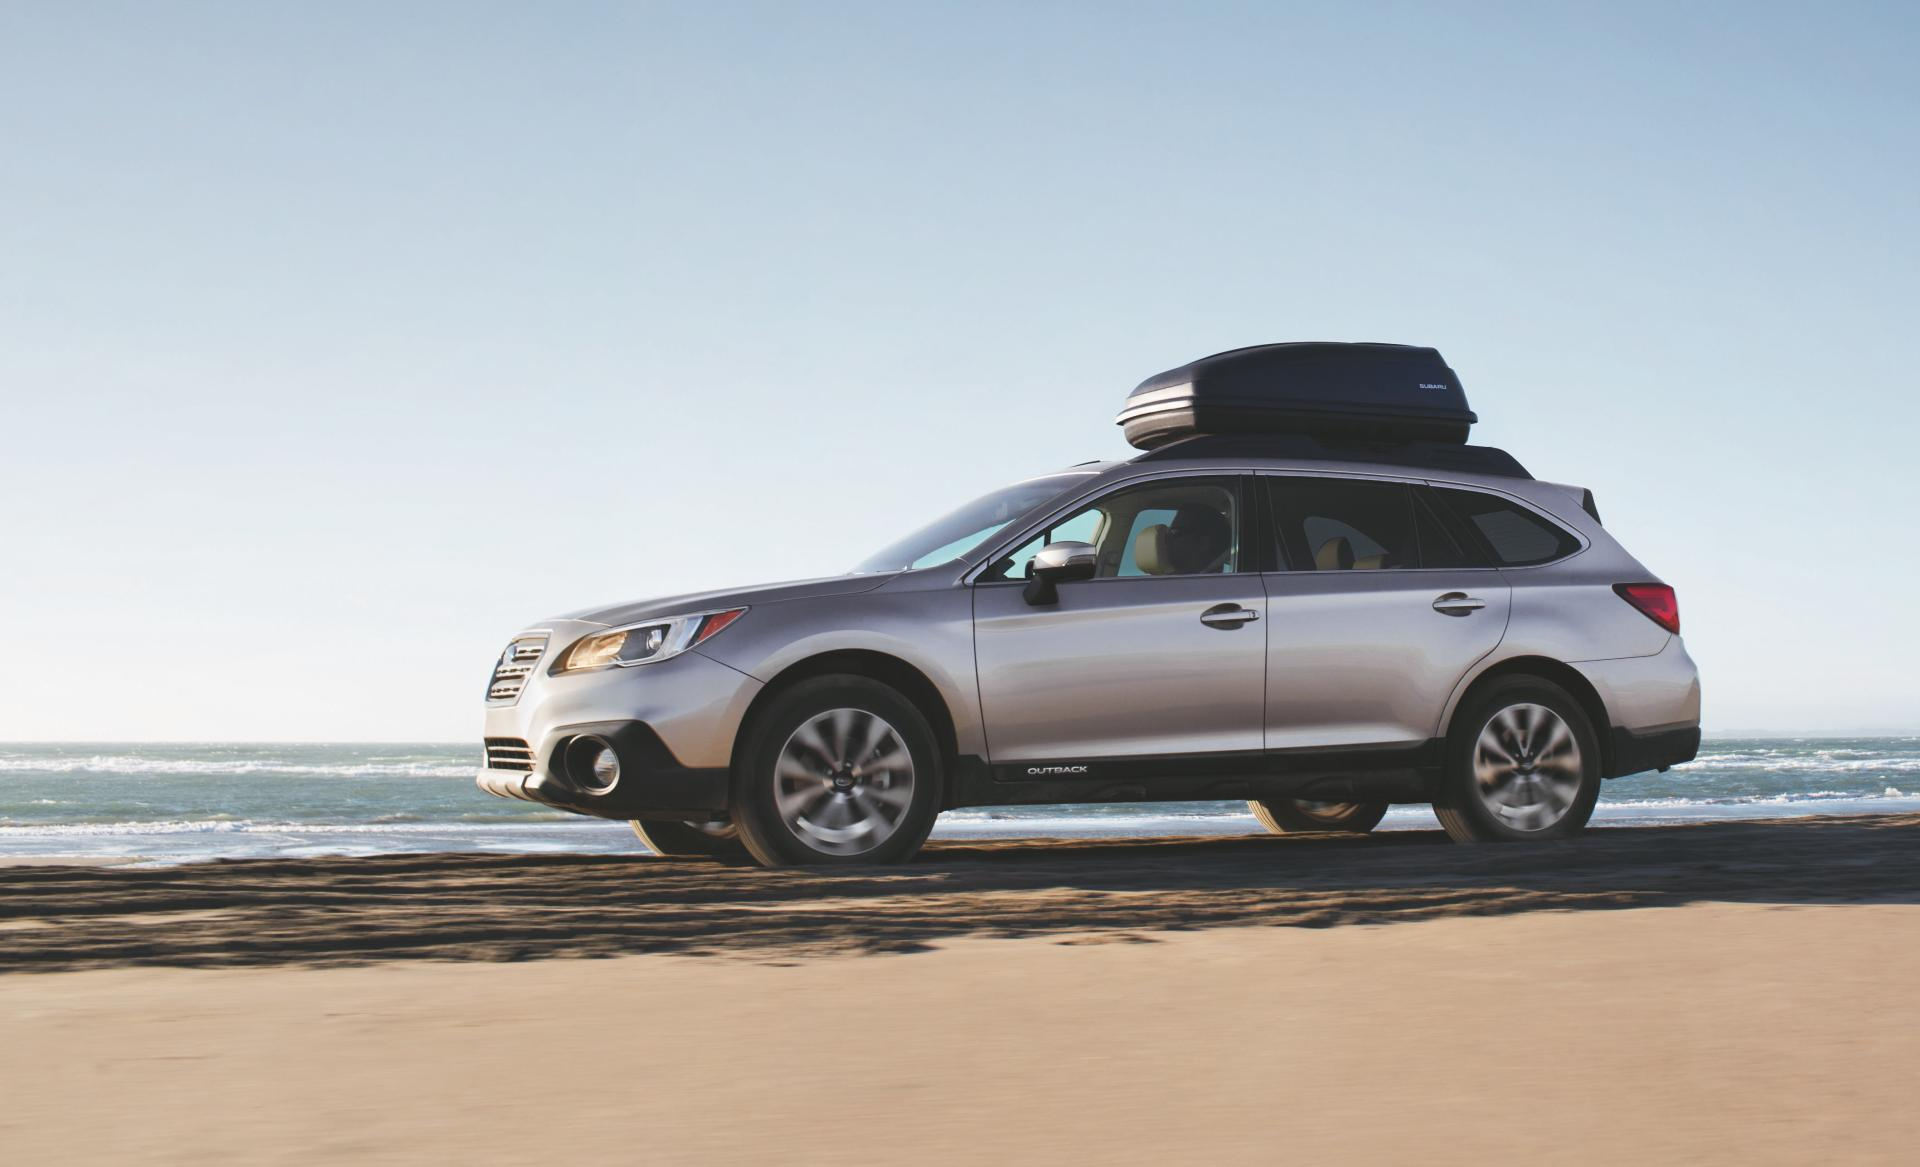 2015 subaru outback technical specifications and data. Black Bedroom Furniture Sets. Home Design Ideas